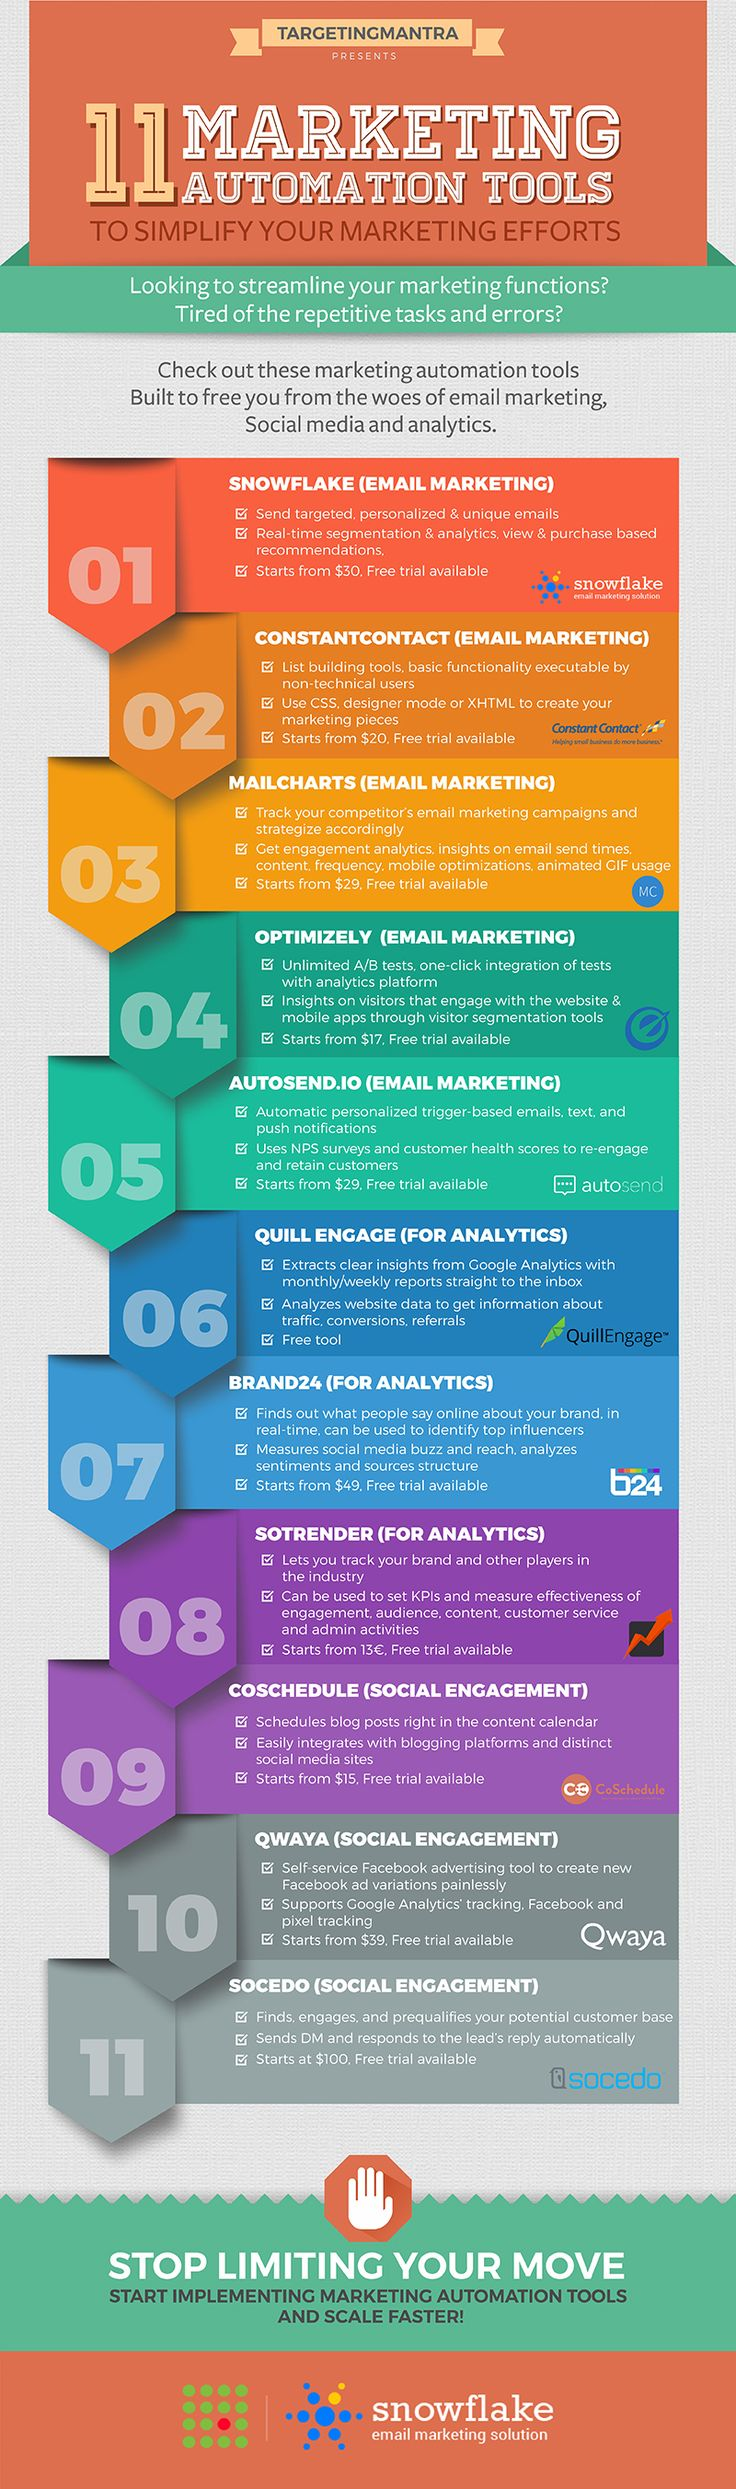 [#Infographic] Can't Keep Up? 11 #Marketing Automation Tools To Simplify Your Marketing Efforts